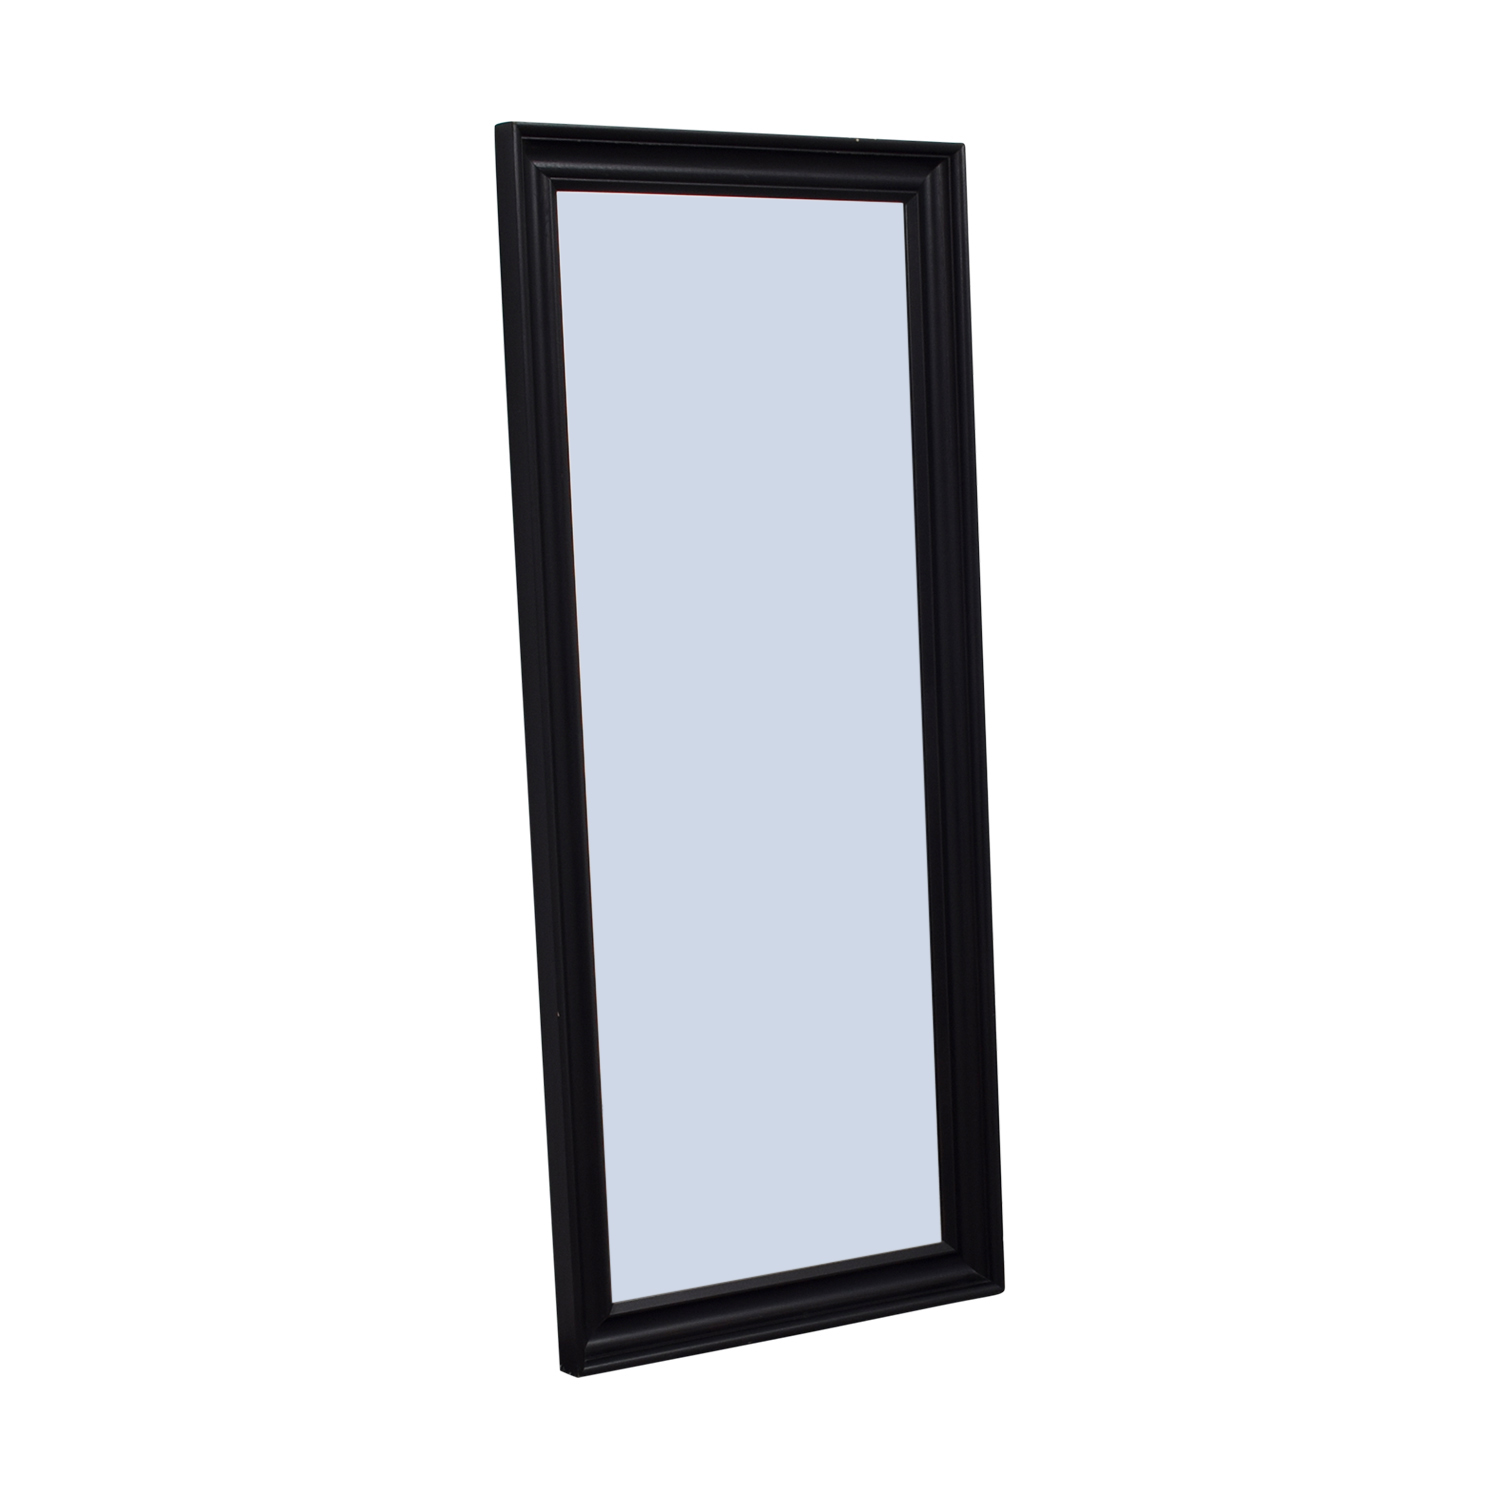 shop Crate & Barrel Black Wood Standing Mirror Crate & Barrel Mirrors